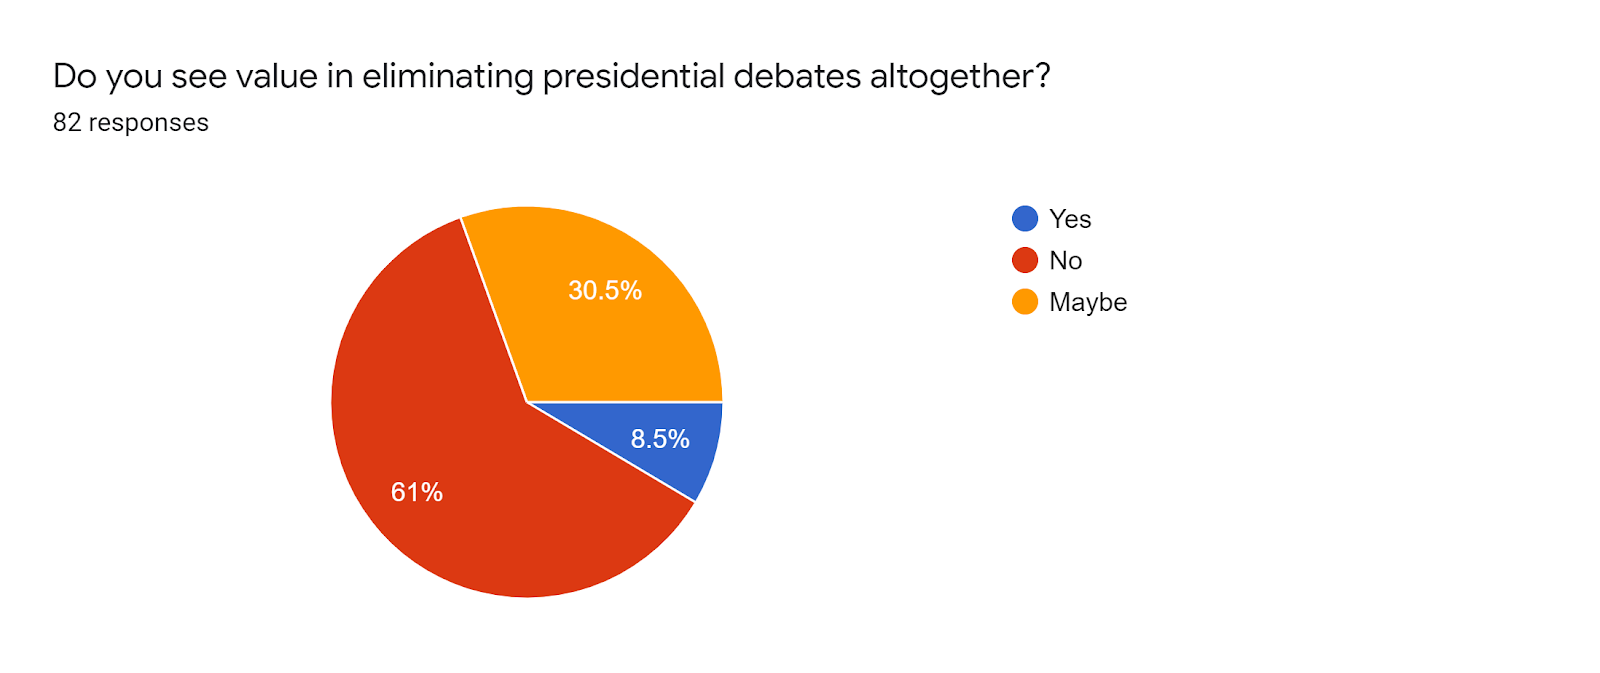 Forms response chart. Question title: Do you see value in eliminating presidential debates altogether?. Number of responses: 82 responses.